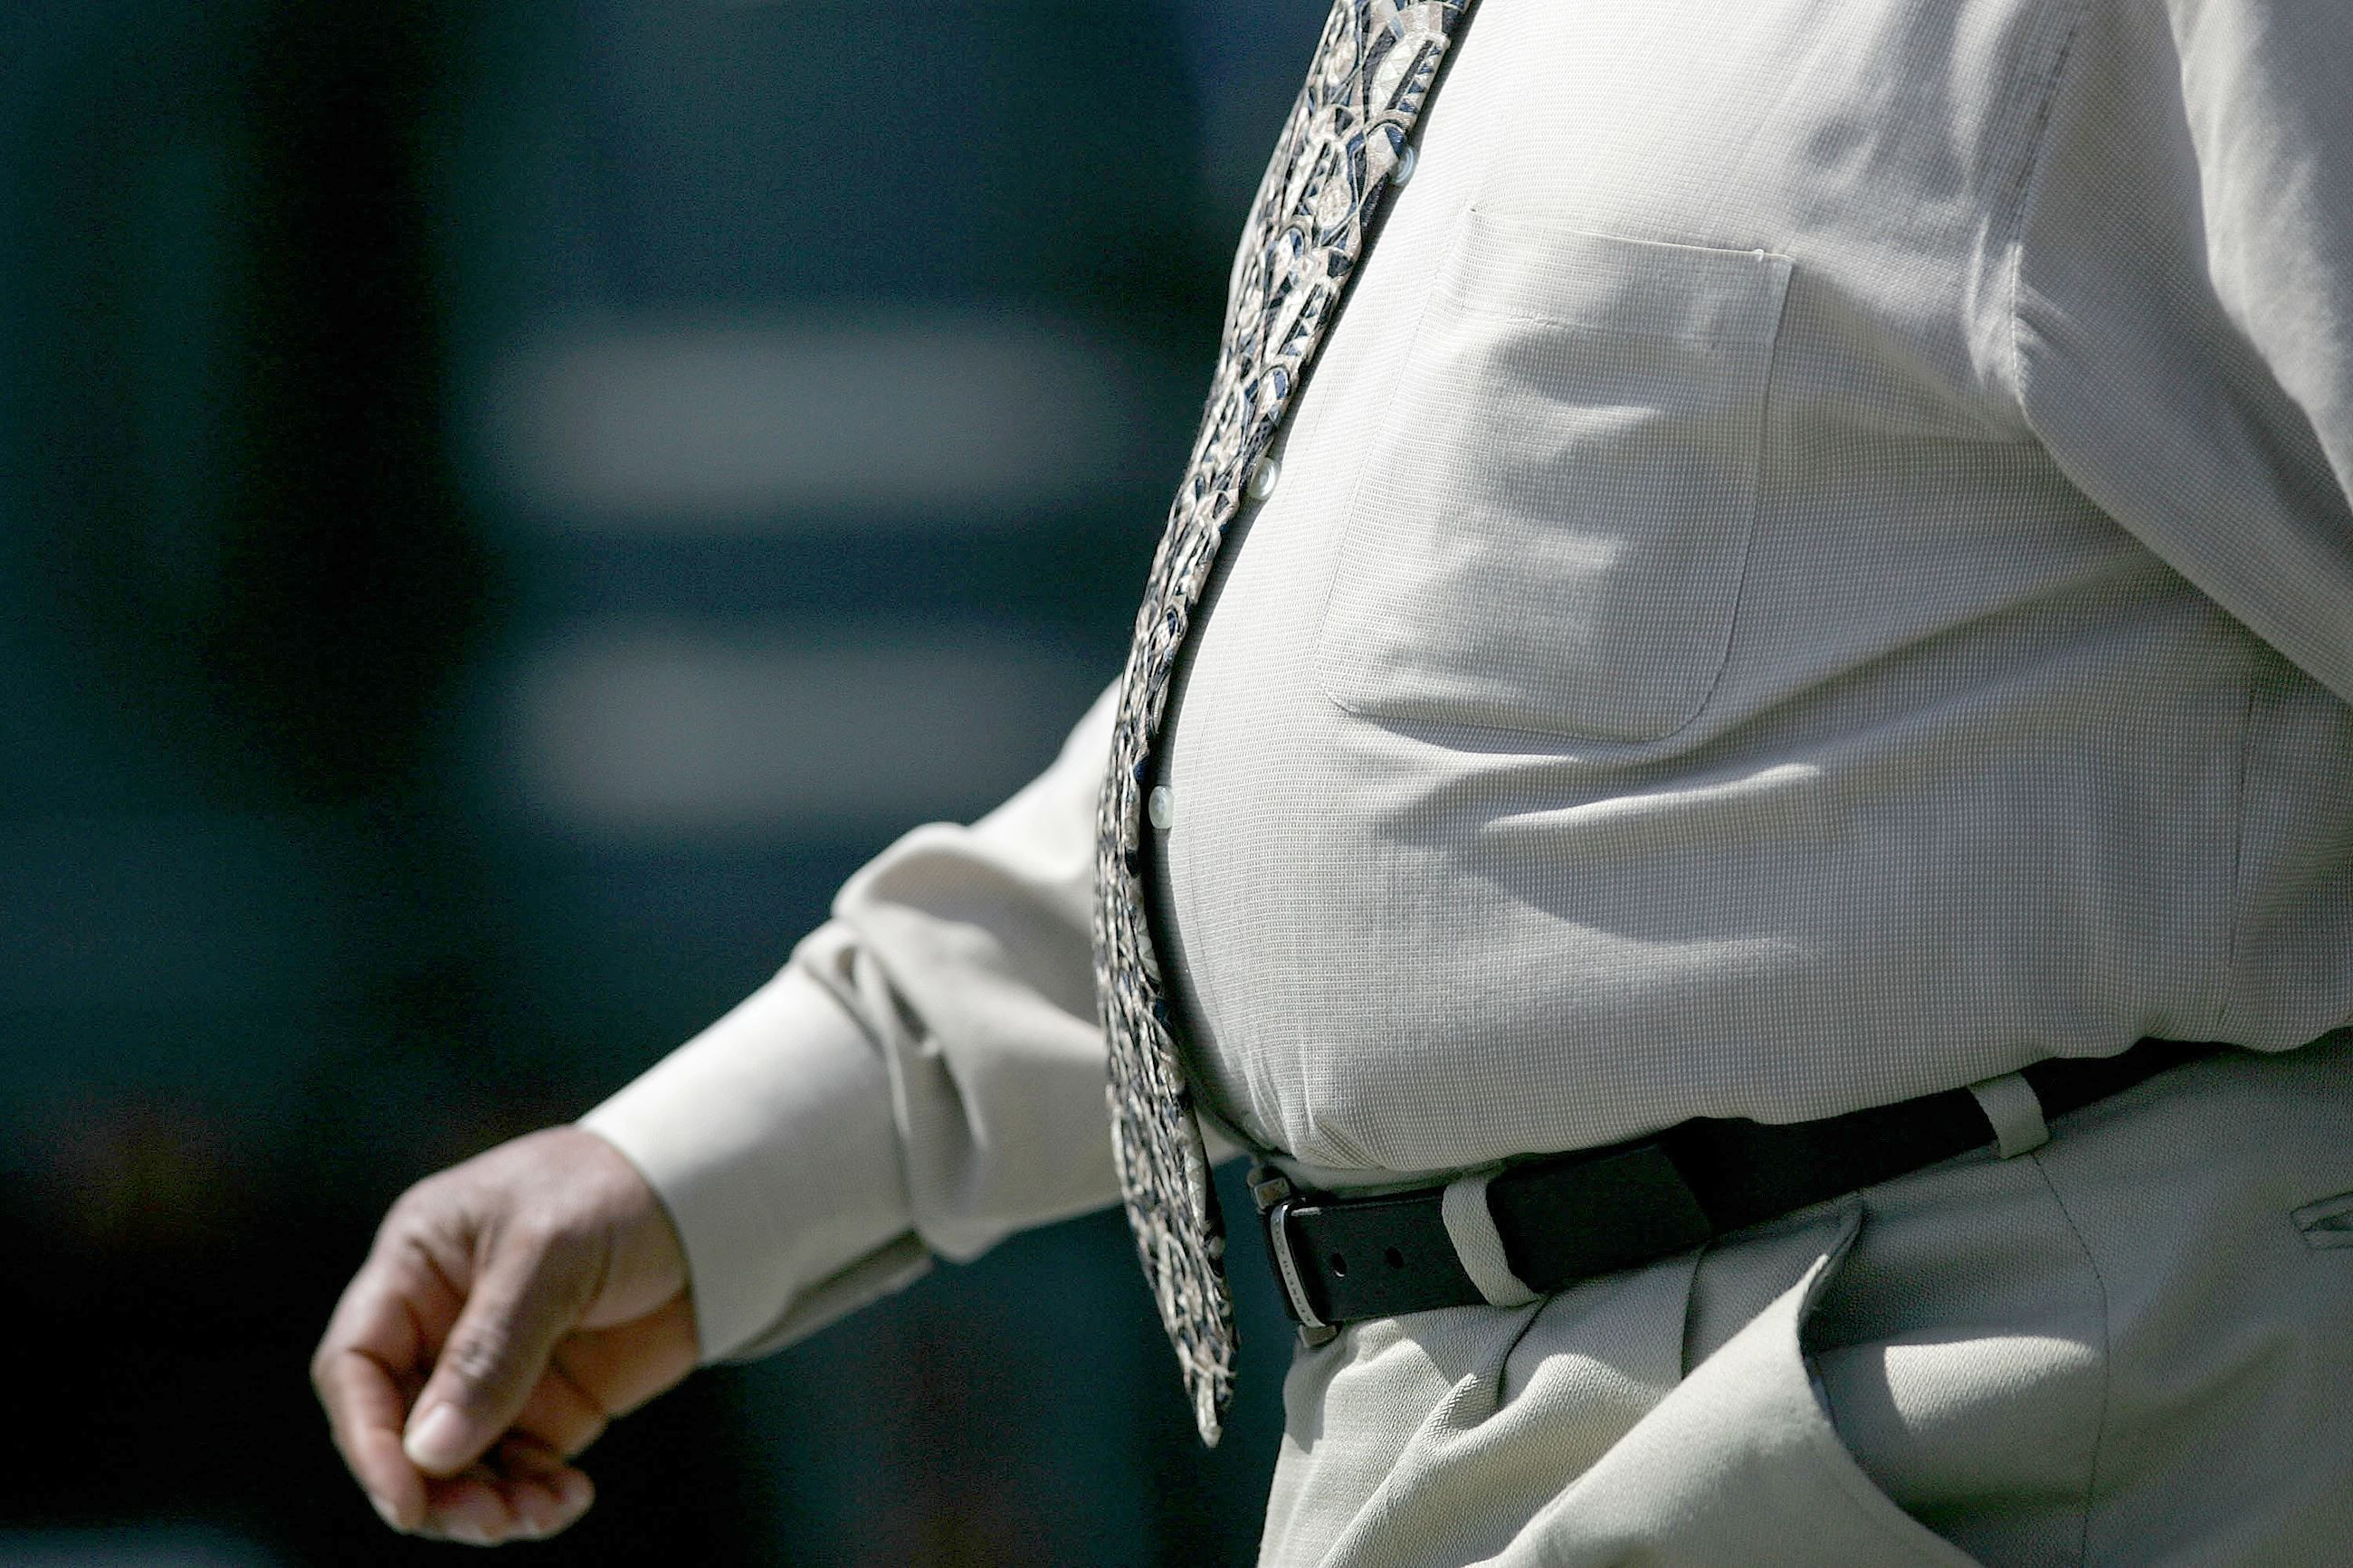 Many workers feel overweight, but don't use company's wellness perks